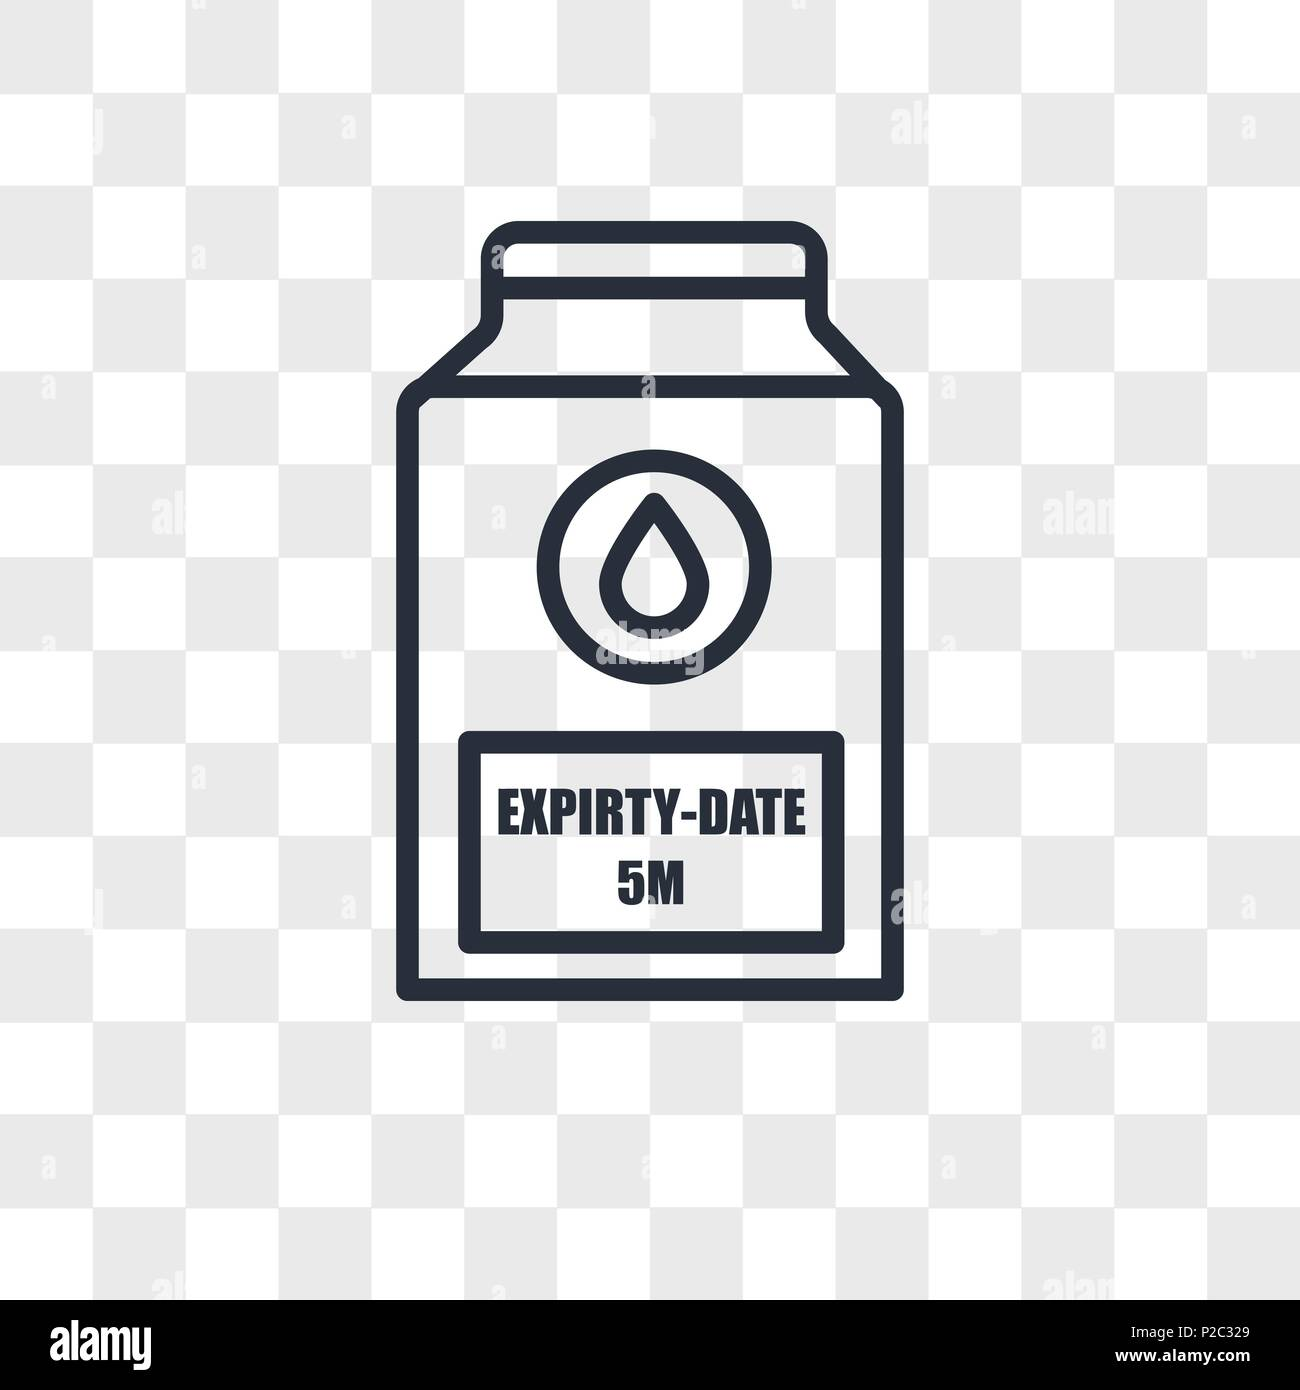 expiry date vector icon isolated on transparent background, expiry date logo concept Stock Vector